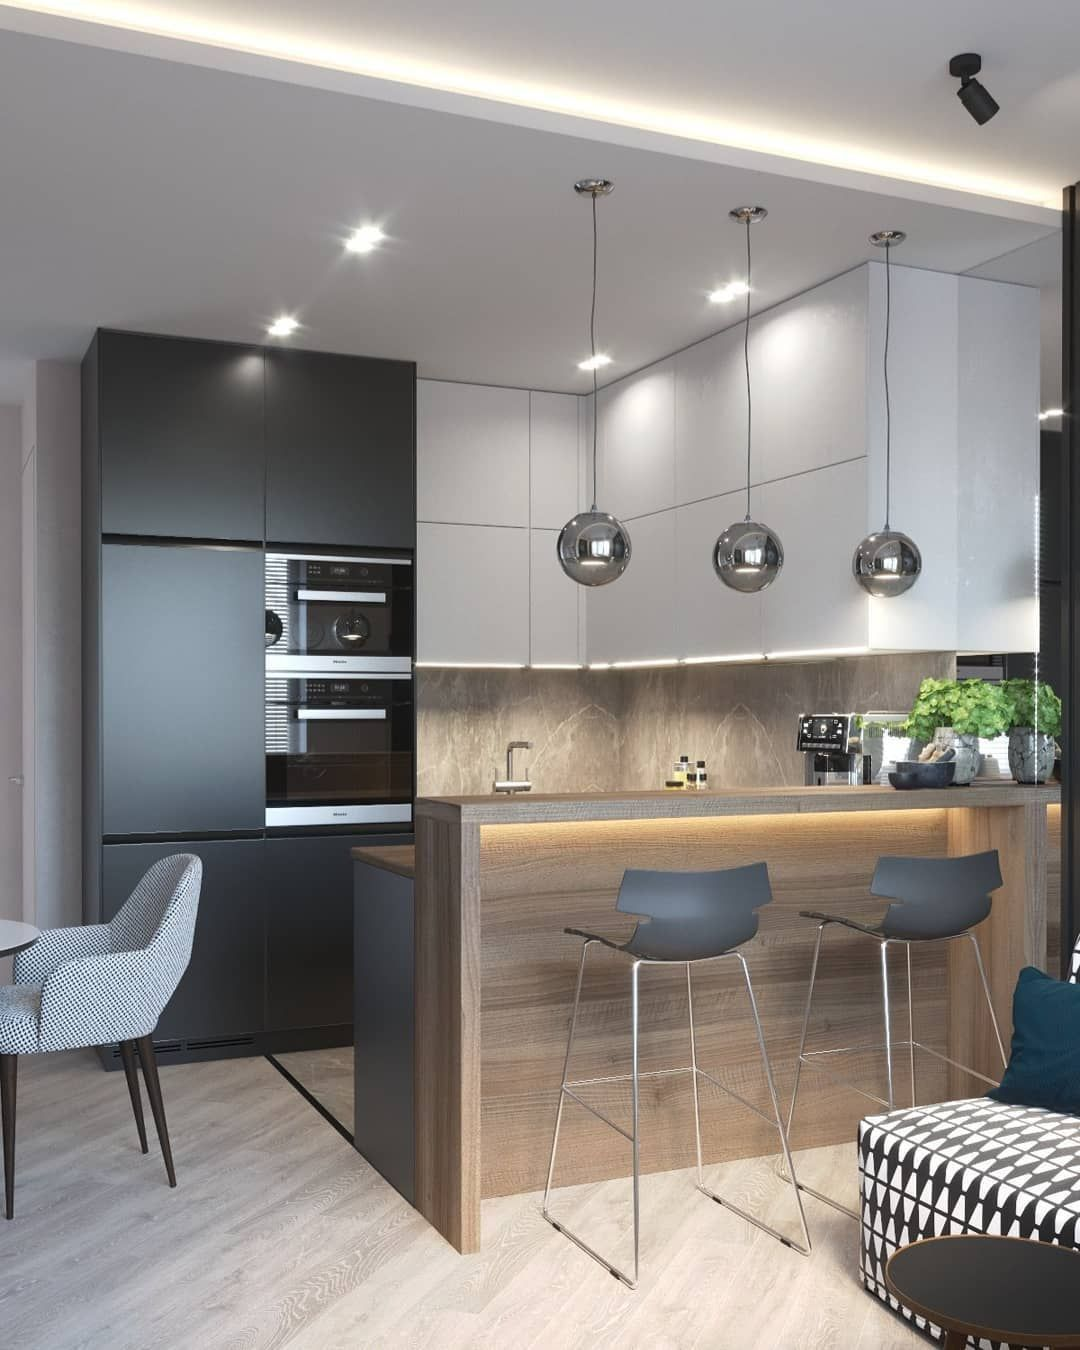 Are You Dreaming About Having A Unique Kitchen That Can Be The Center Of Attention In Yo Kitchen Design Kitchen Interior Design Modern Modern Kitchen Interiors